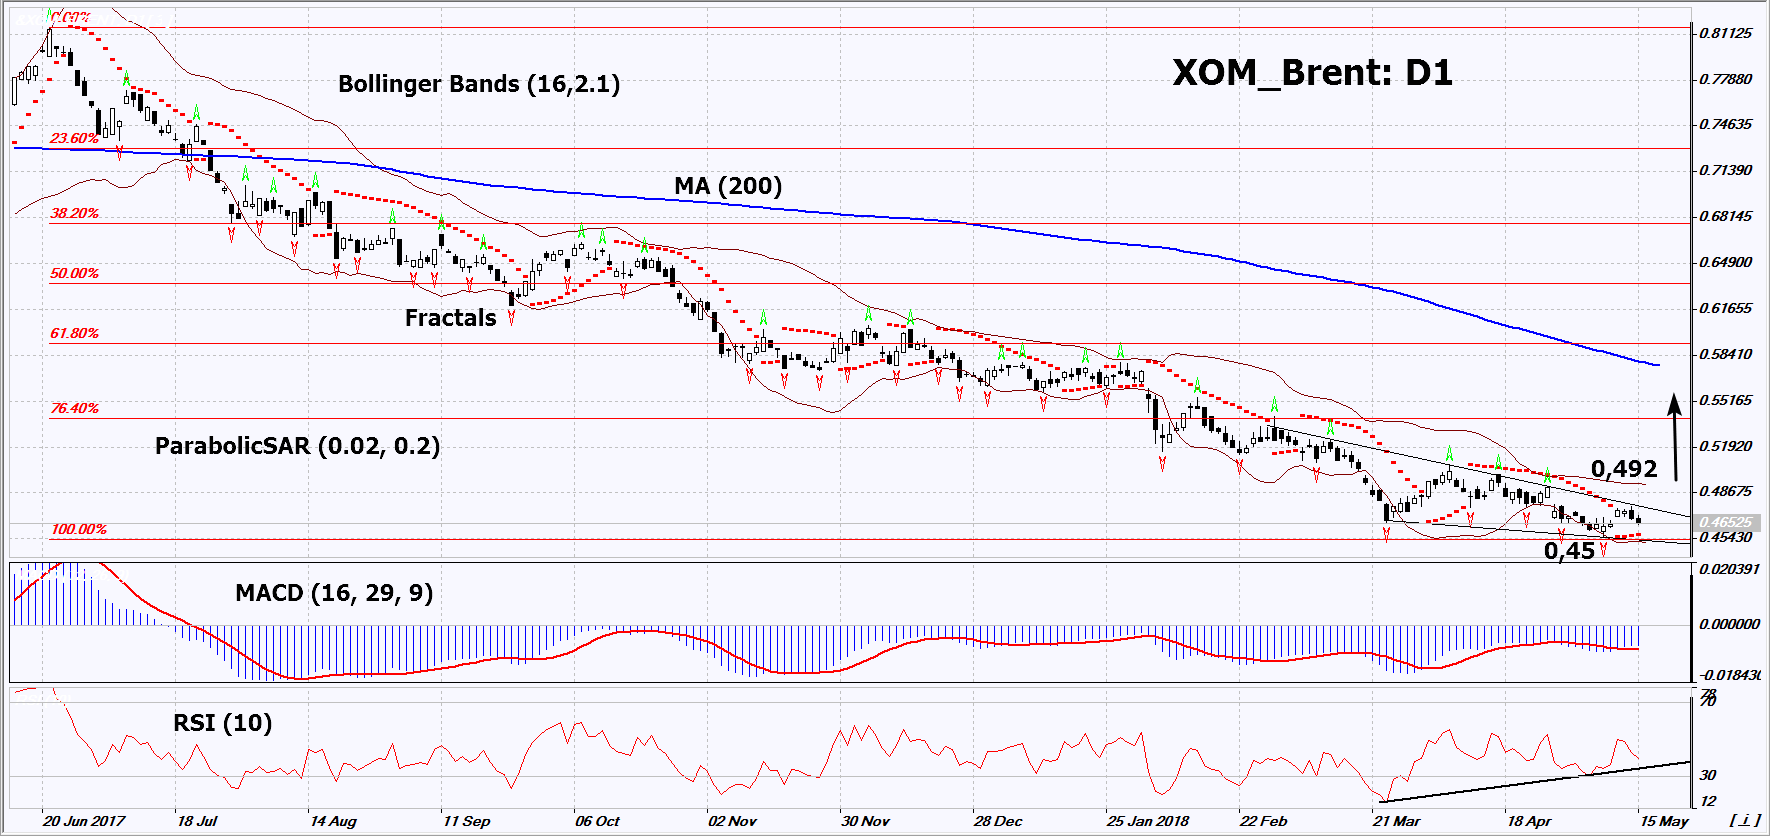 XOM_Brent Daily Chart